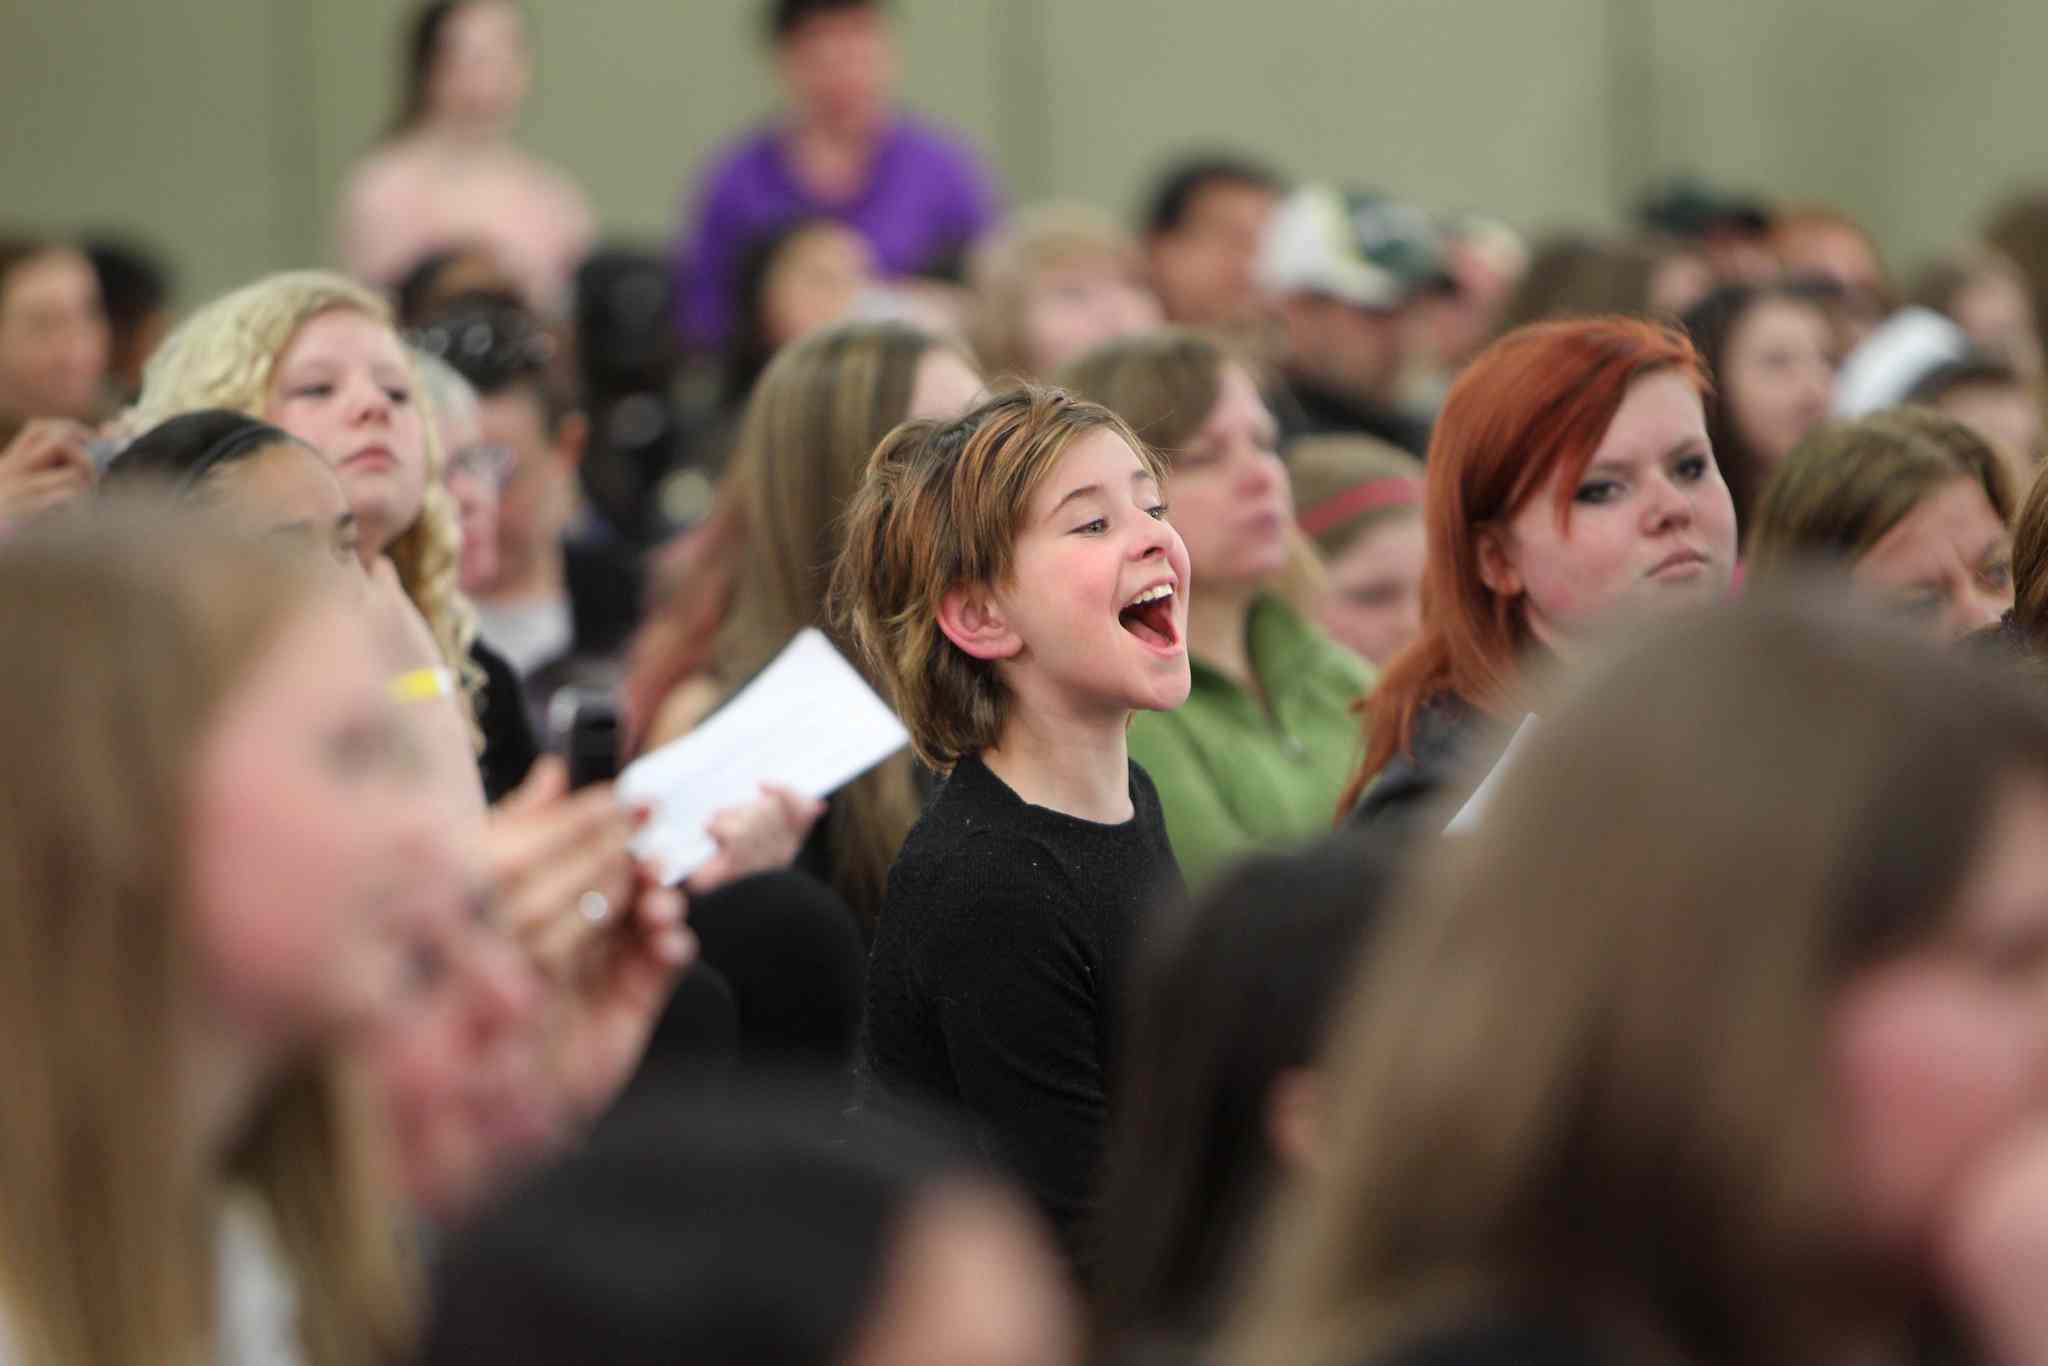 Hundreds of kids show their excitement while waiting in lineups to audition for Next Star at the  convention centre Saturday.